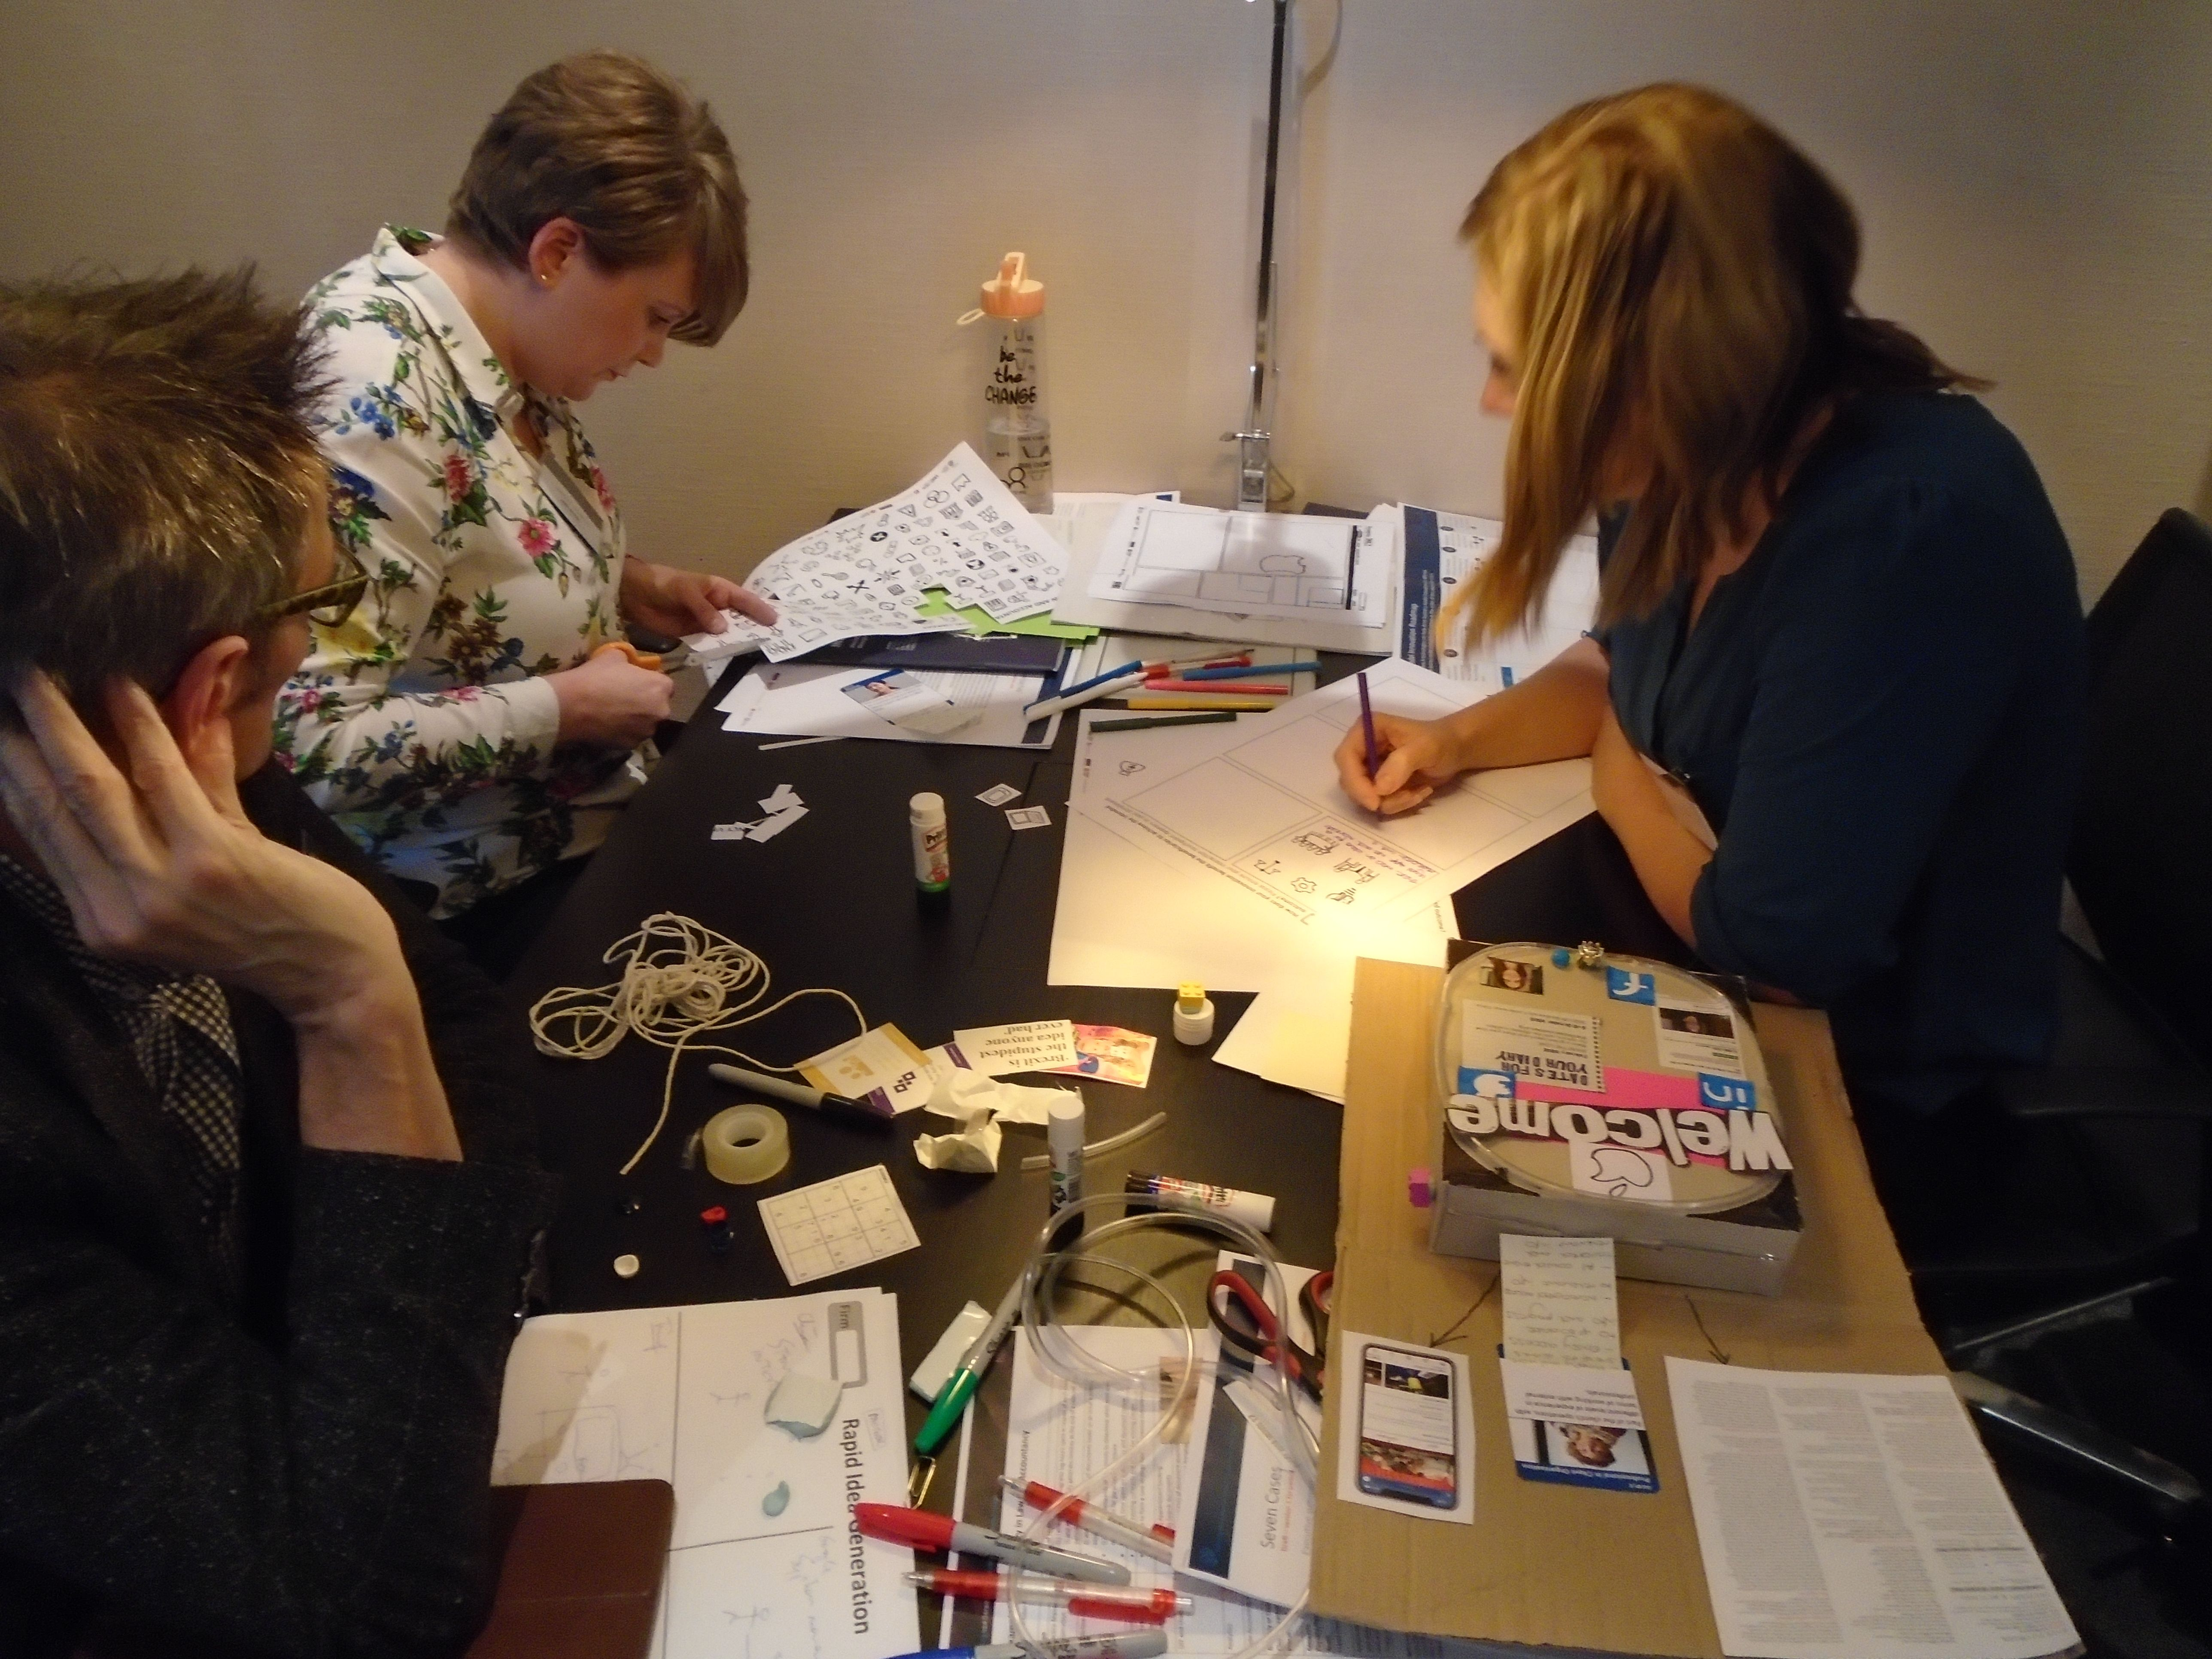 People working at a table with lots of papers and materials on the desk